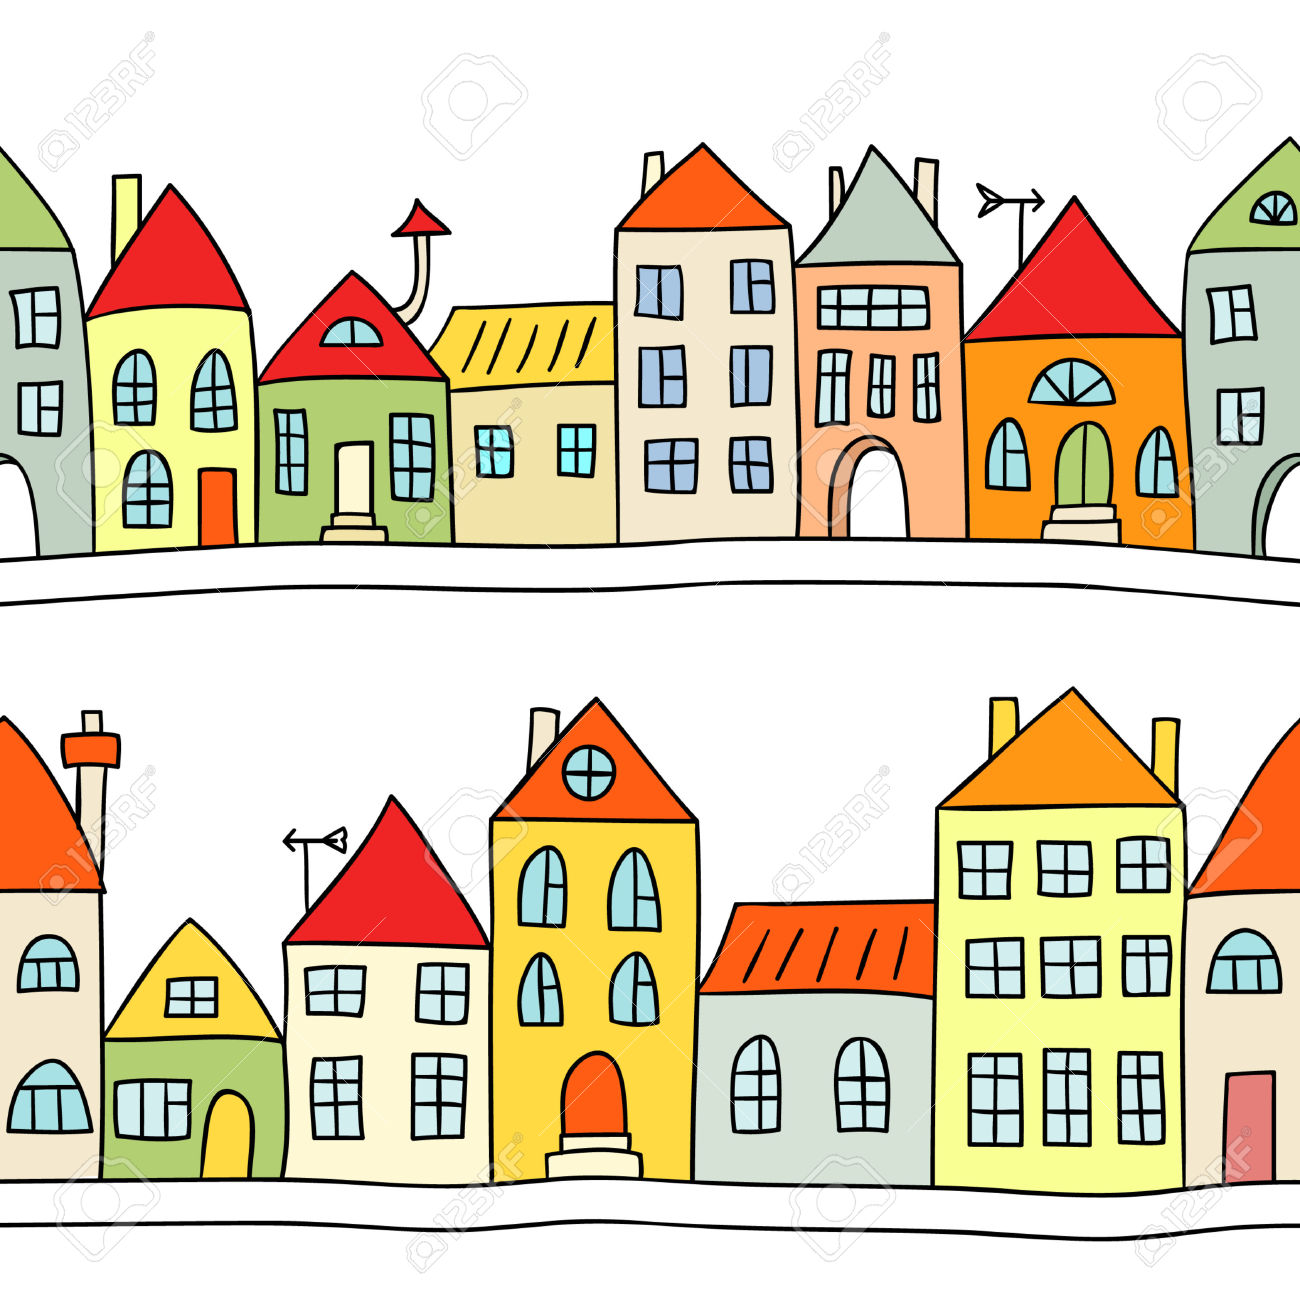 3 section house clipart clipart images gallery for free.